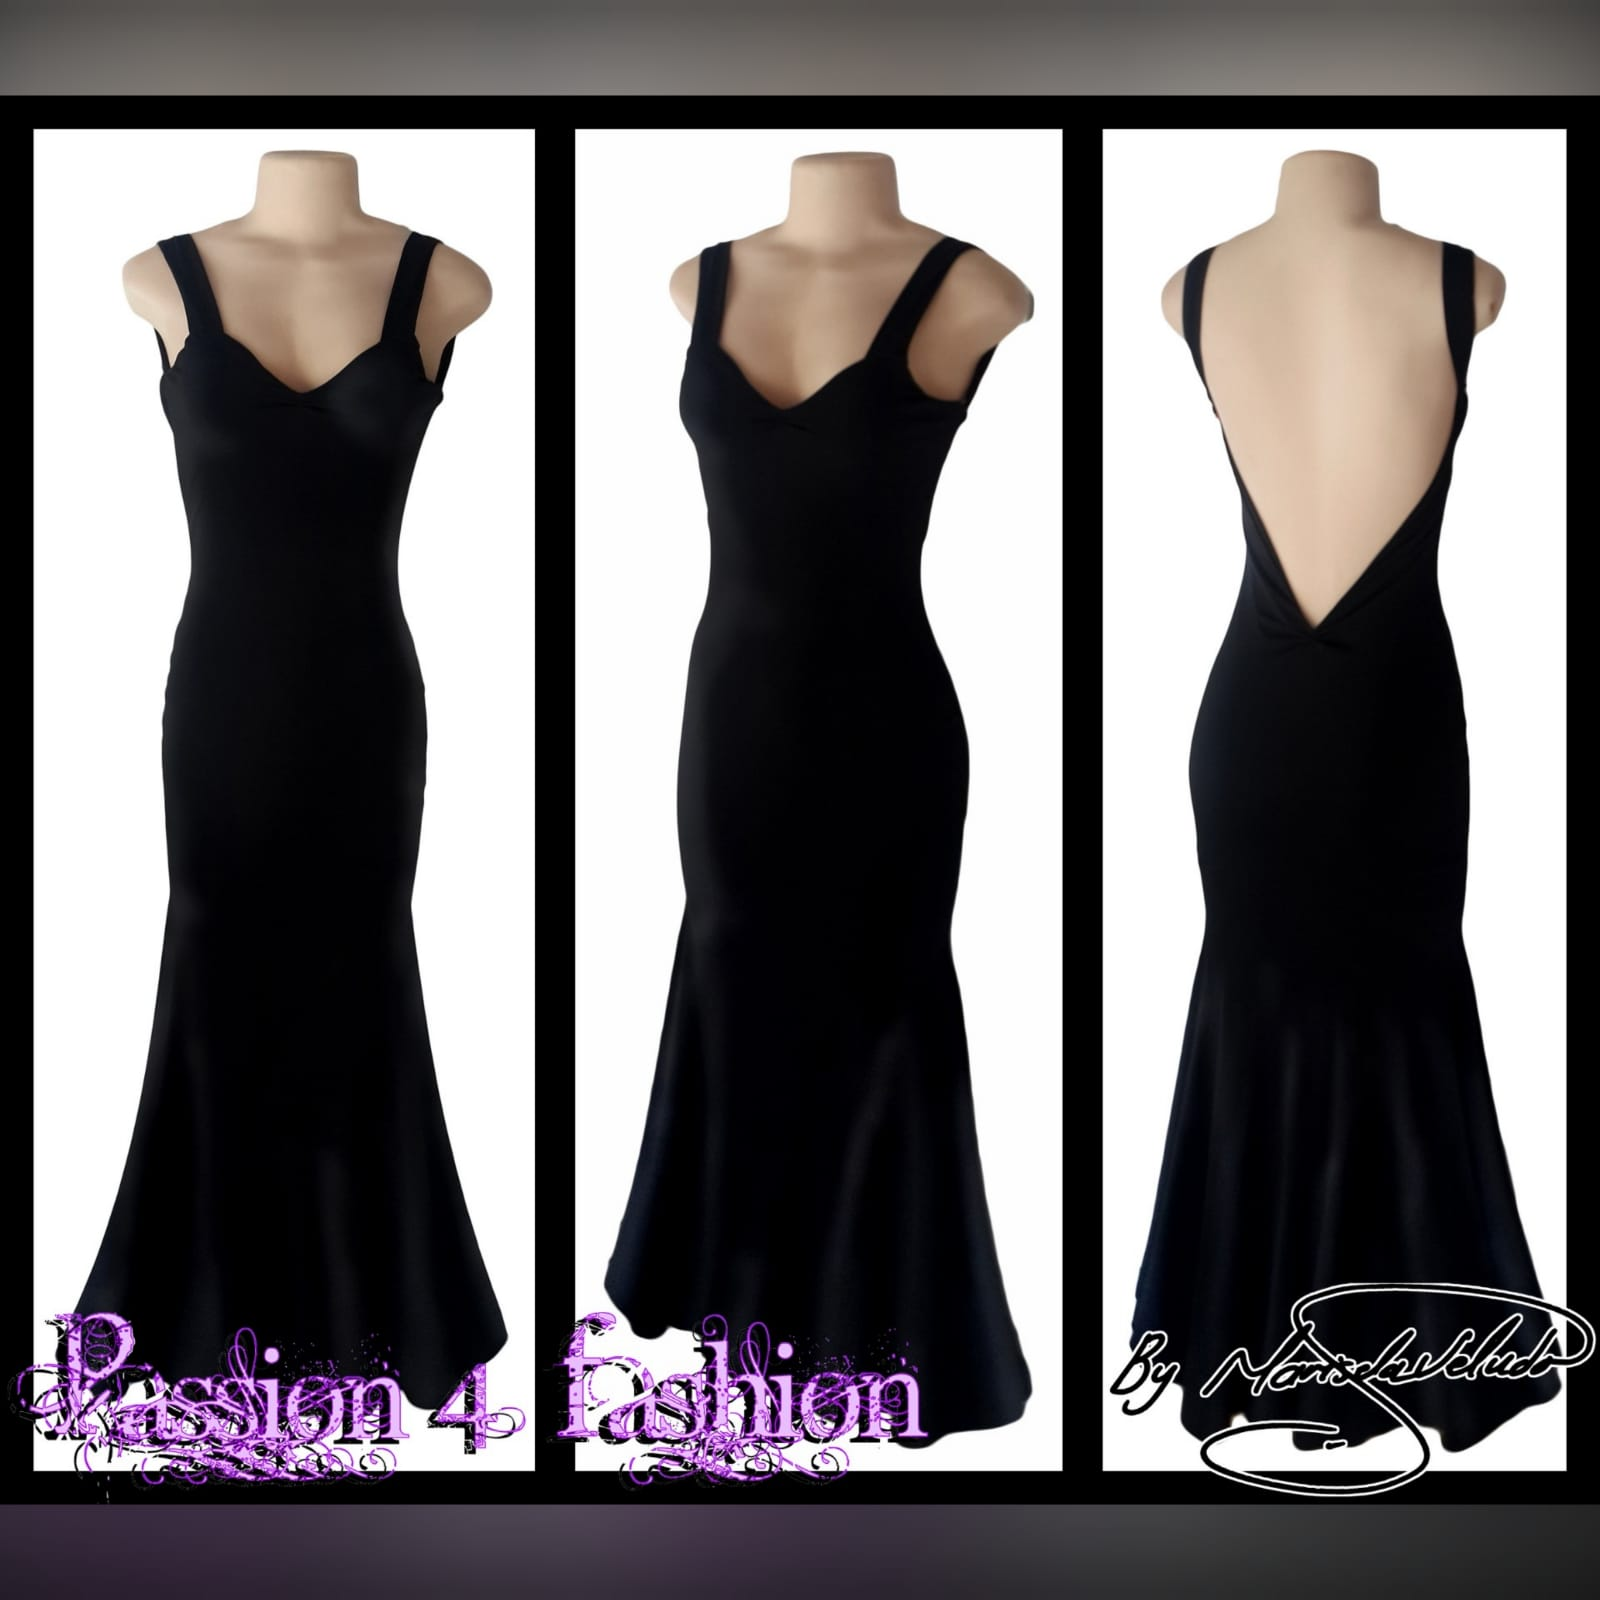 Black sexy evening dress fitted till the hip 2 black sexy evening dress fitted till the hip, with a low v open back. Straps with a sweetheart neckline.